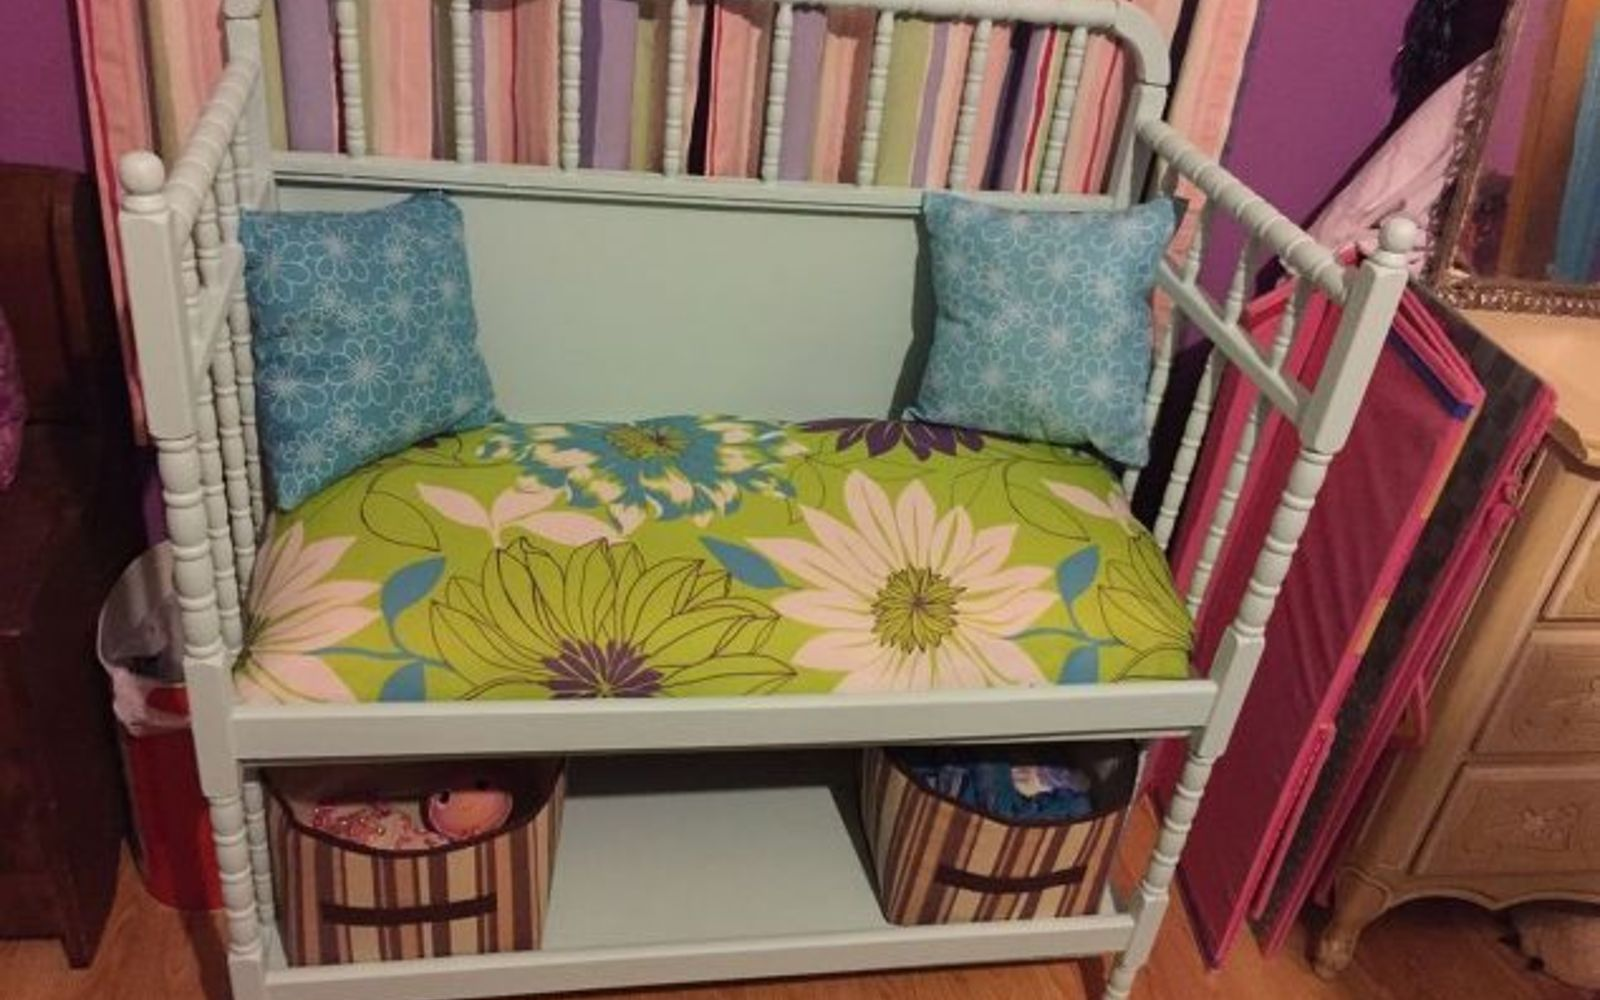 s here s why you shouldn t throw out your old changing table, painted furniture, repurposing upcycling, This one was made into a bench